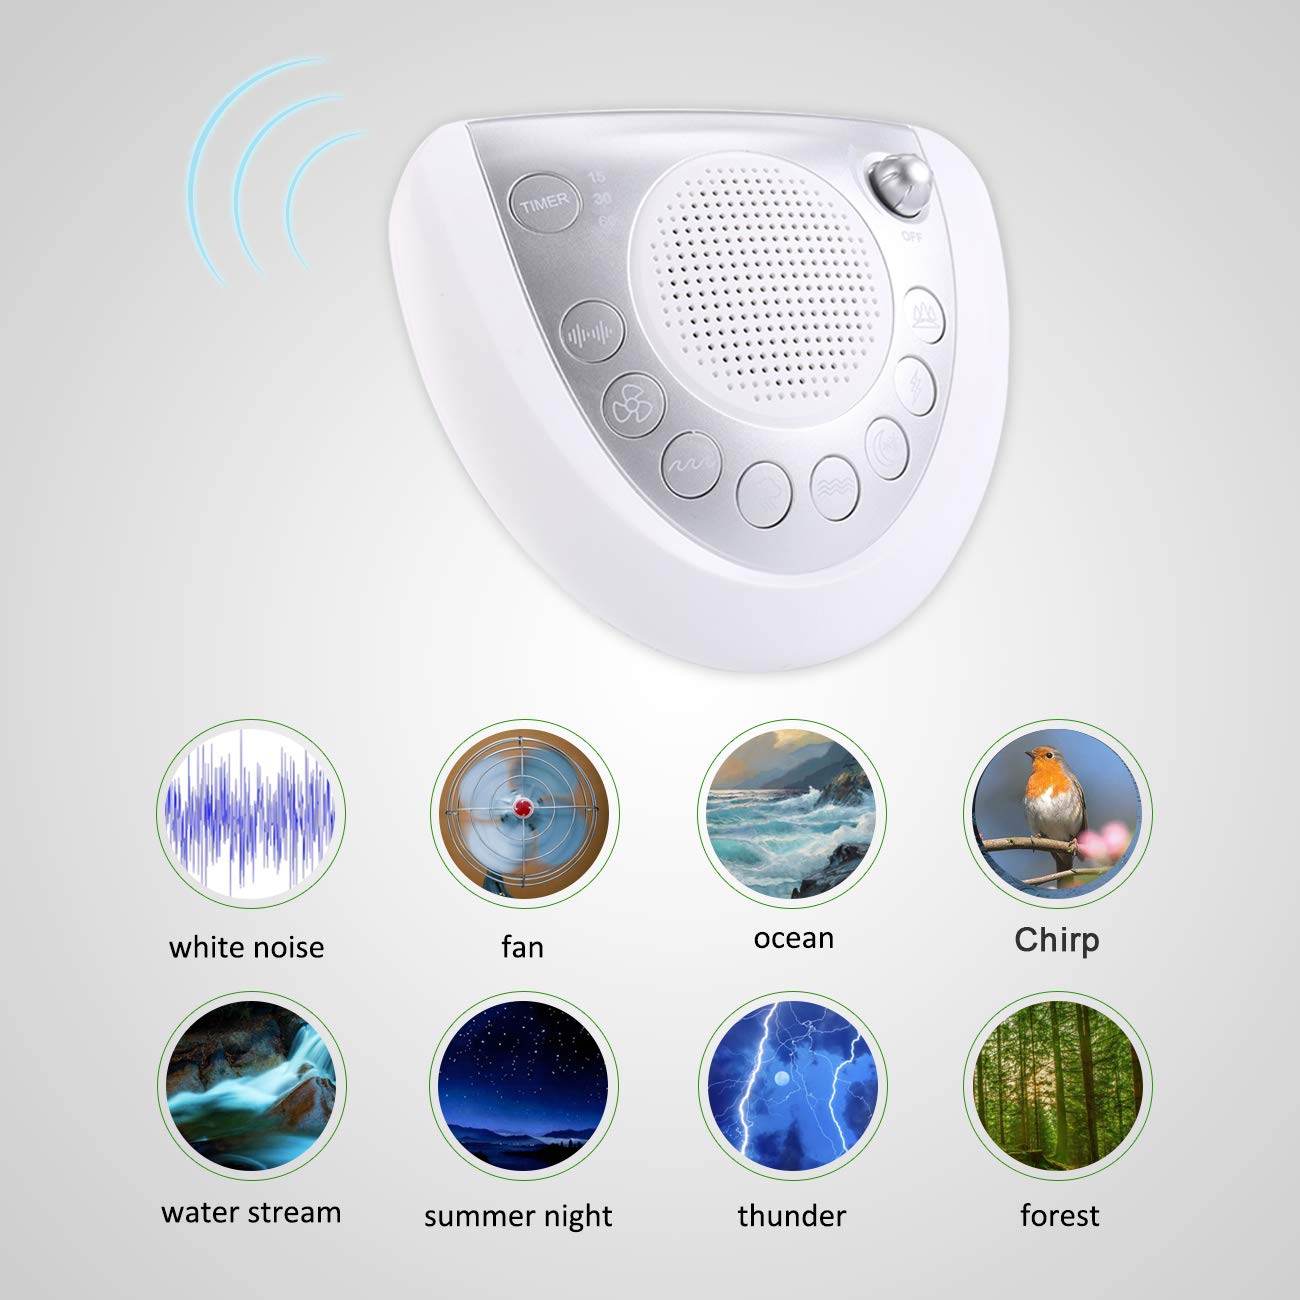 White Noise Sound Machine - Raynic Sleep Therapy Portable Spa Relaxation Machine with 8 Natural Soothing Sounds, Sleep Timer, Headphone Jack, USB Port for Baby, Kids, Adults, Traveler, Office, bedroom